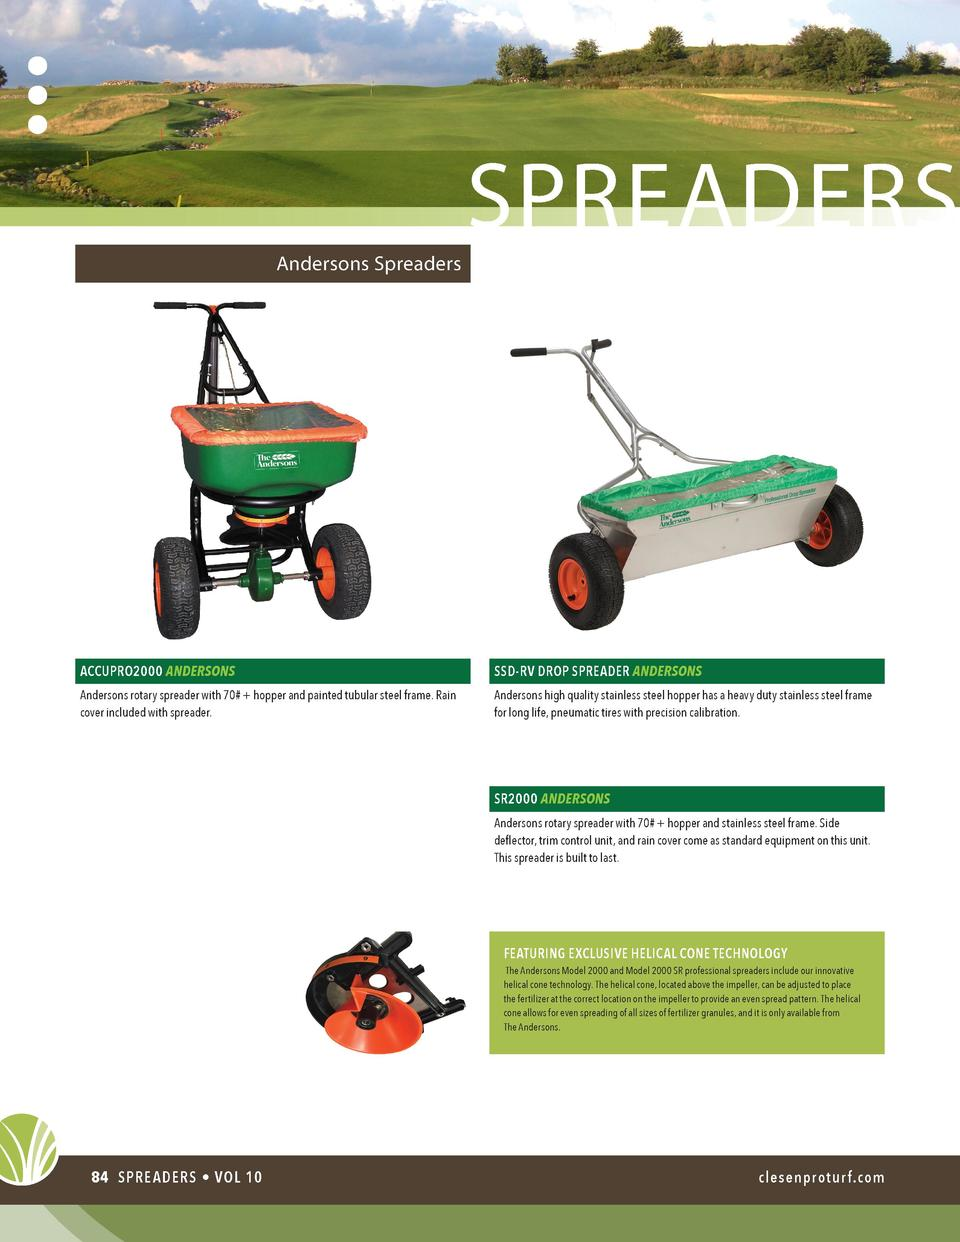 Andersons Spreaders  spreaders  ACCUPRO2000 ANDERSONS  SSD-RV DROP SPREADER ANDERSONS  Andersons rotary spreader with 70  ...